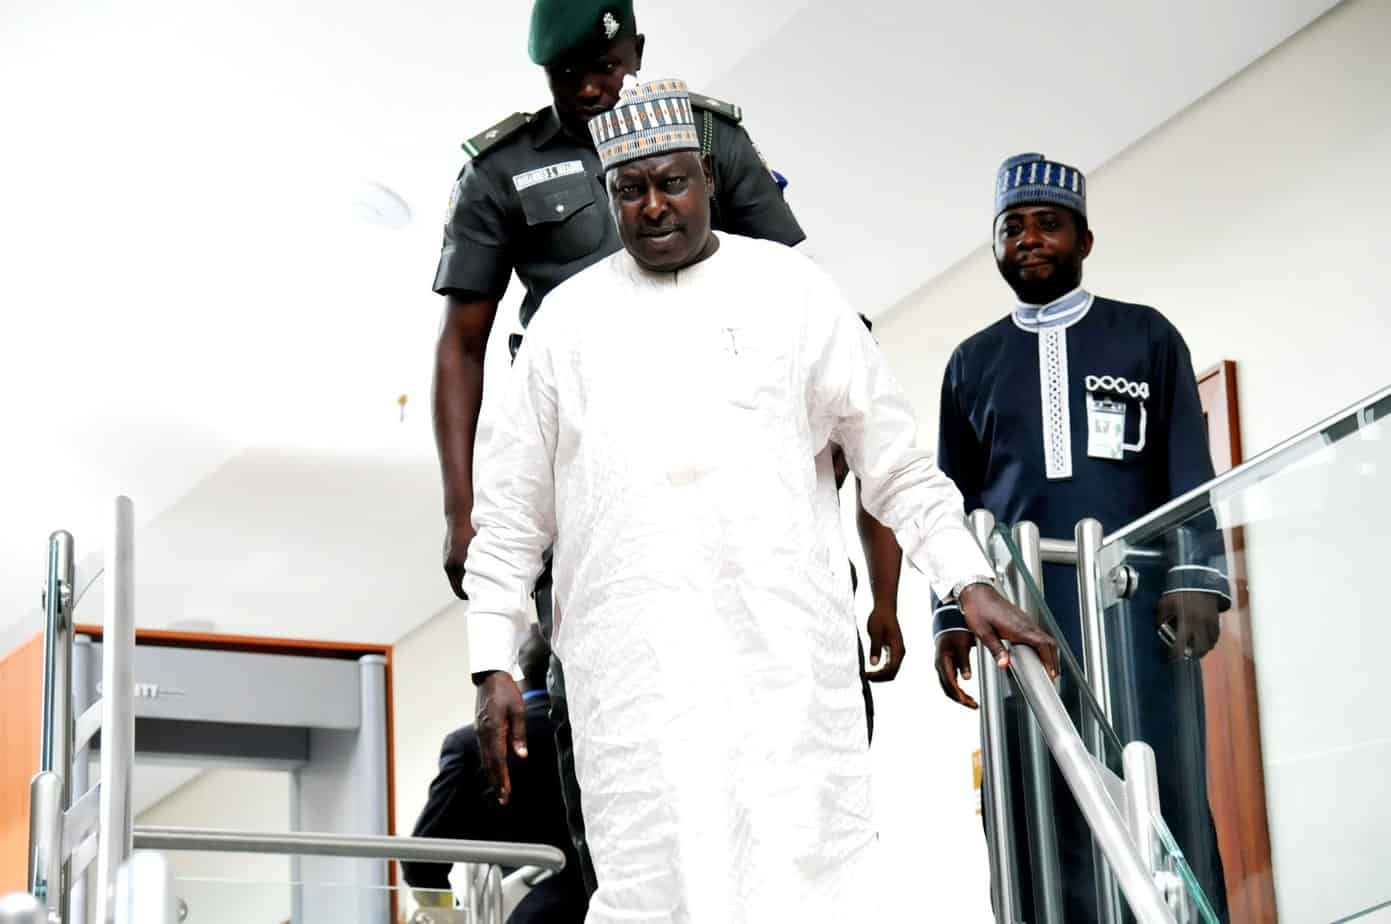 Babachir Lawal may be replaced by Tony Momoh or Buba Galadima